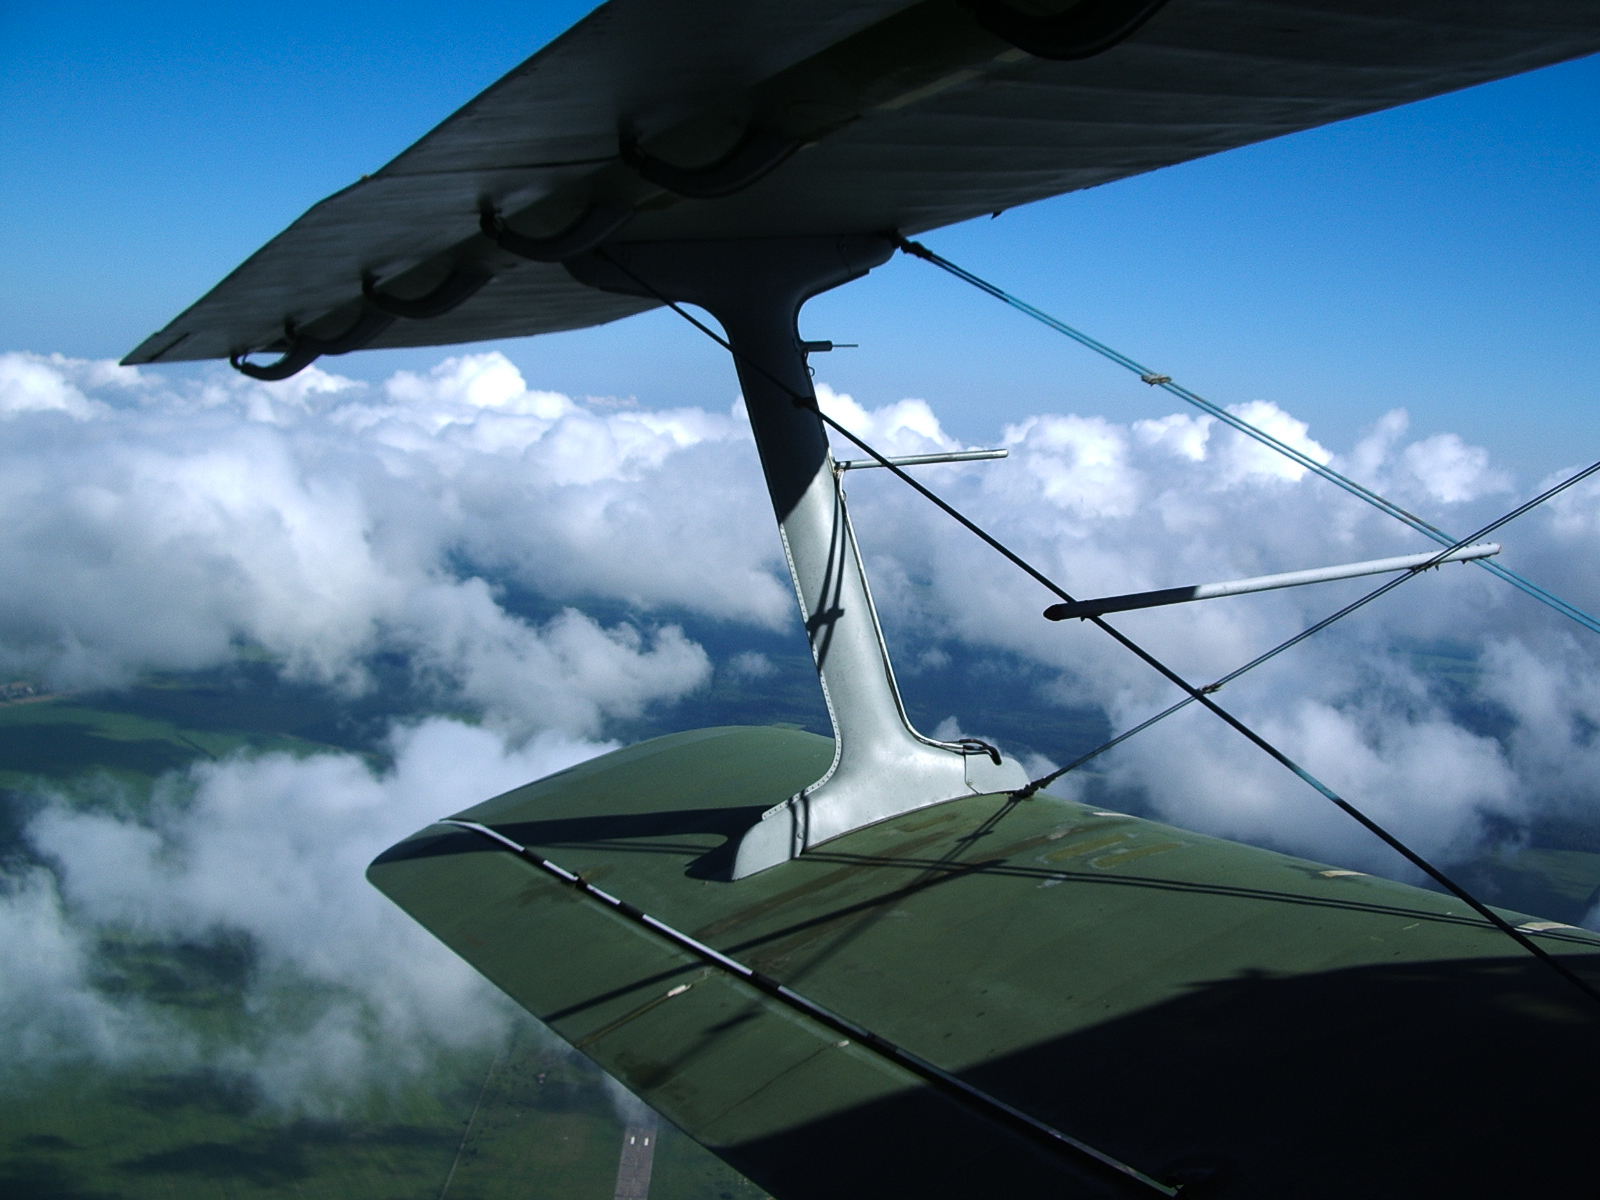 Airplane Wing, Aerial, Looking, Window, Weather, HQ Photo